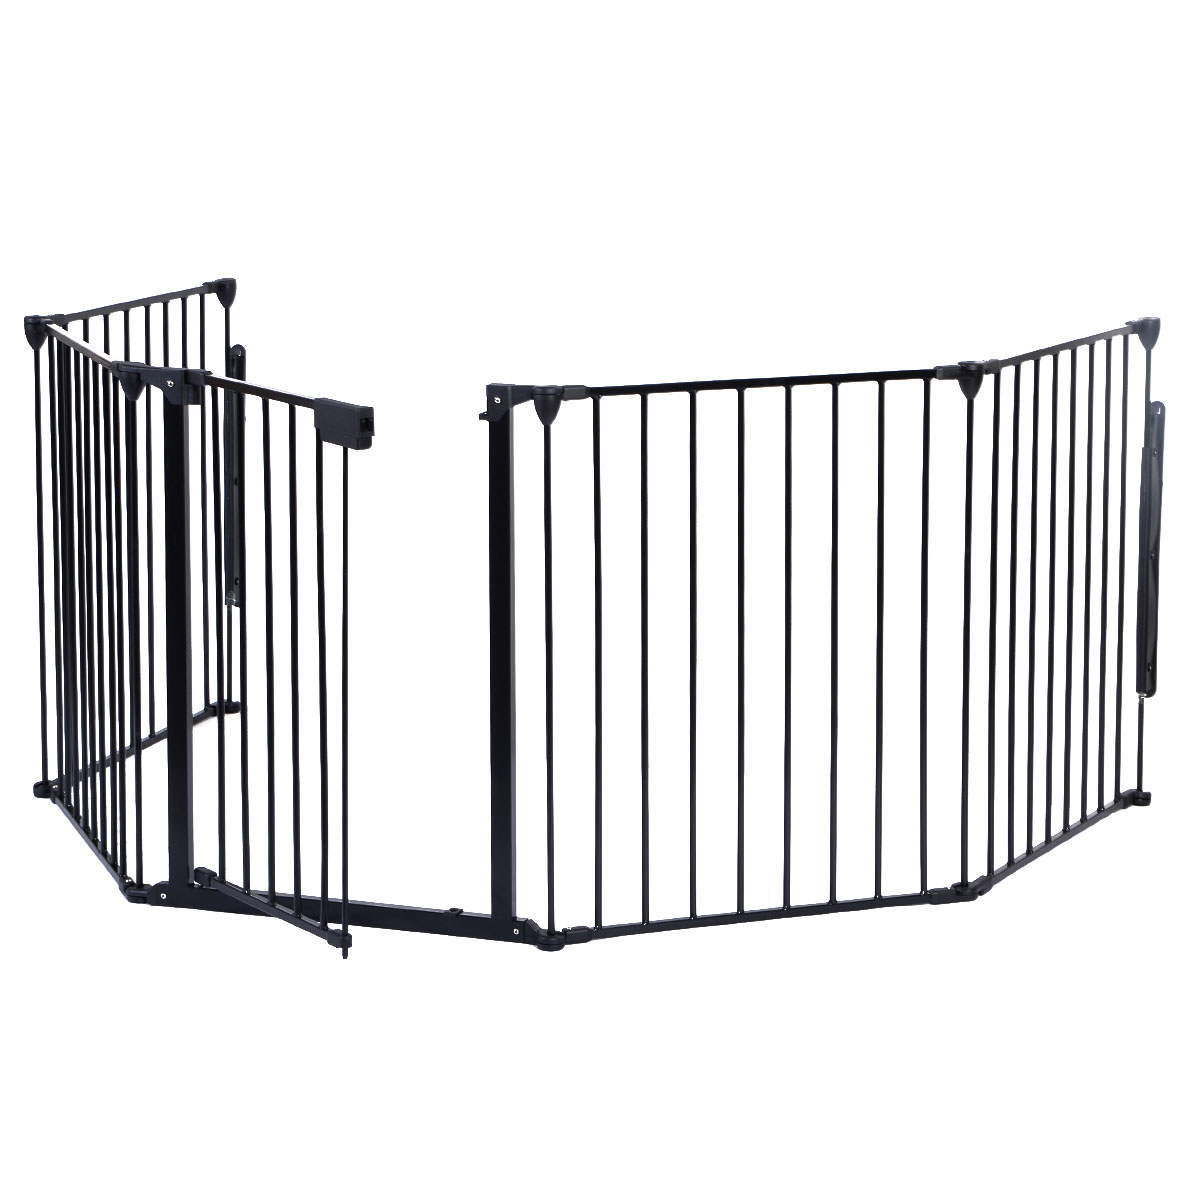 costway new fireplace fence baby safety fence hearth gate bbq metal fire gate pet dog cat walmartcom